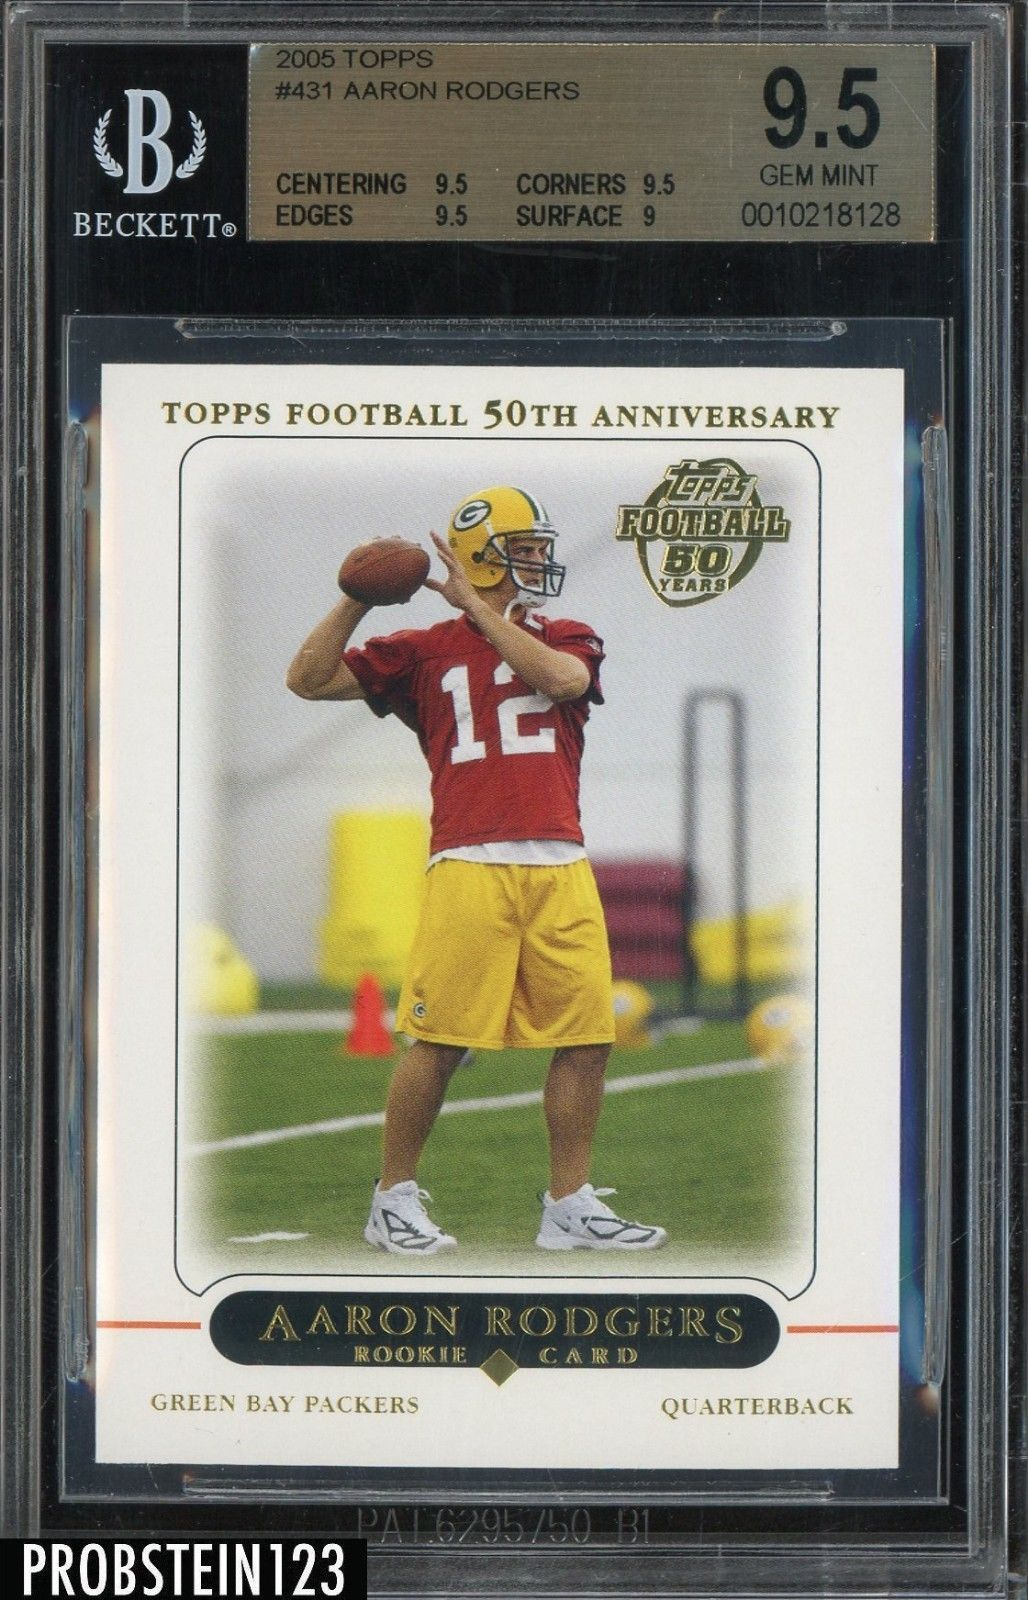 2005 Topps 50th 431 Aaron Rodgers Packers Rc Rookie Bgs 9 5 Bgs95 Sportscards Green Bay Packers Football Trading Cards